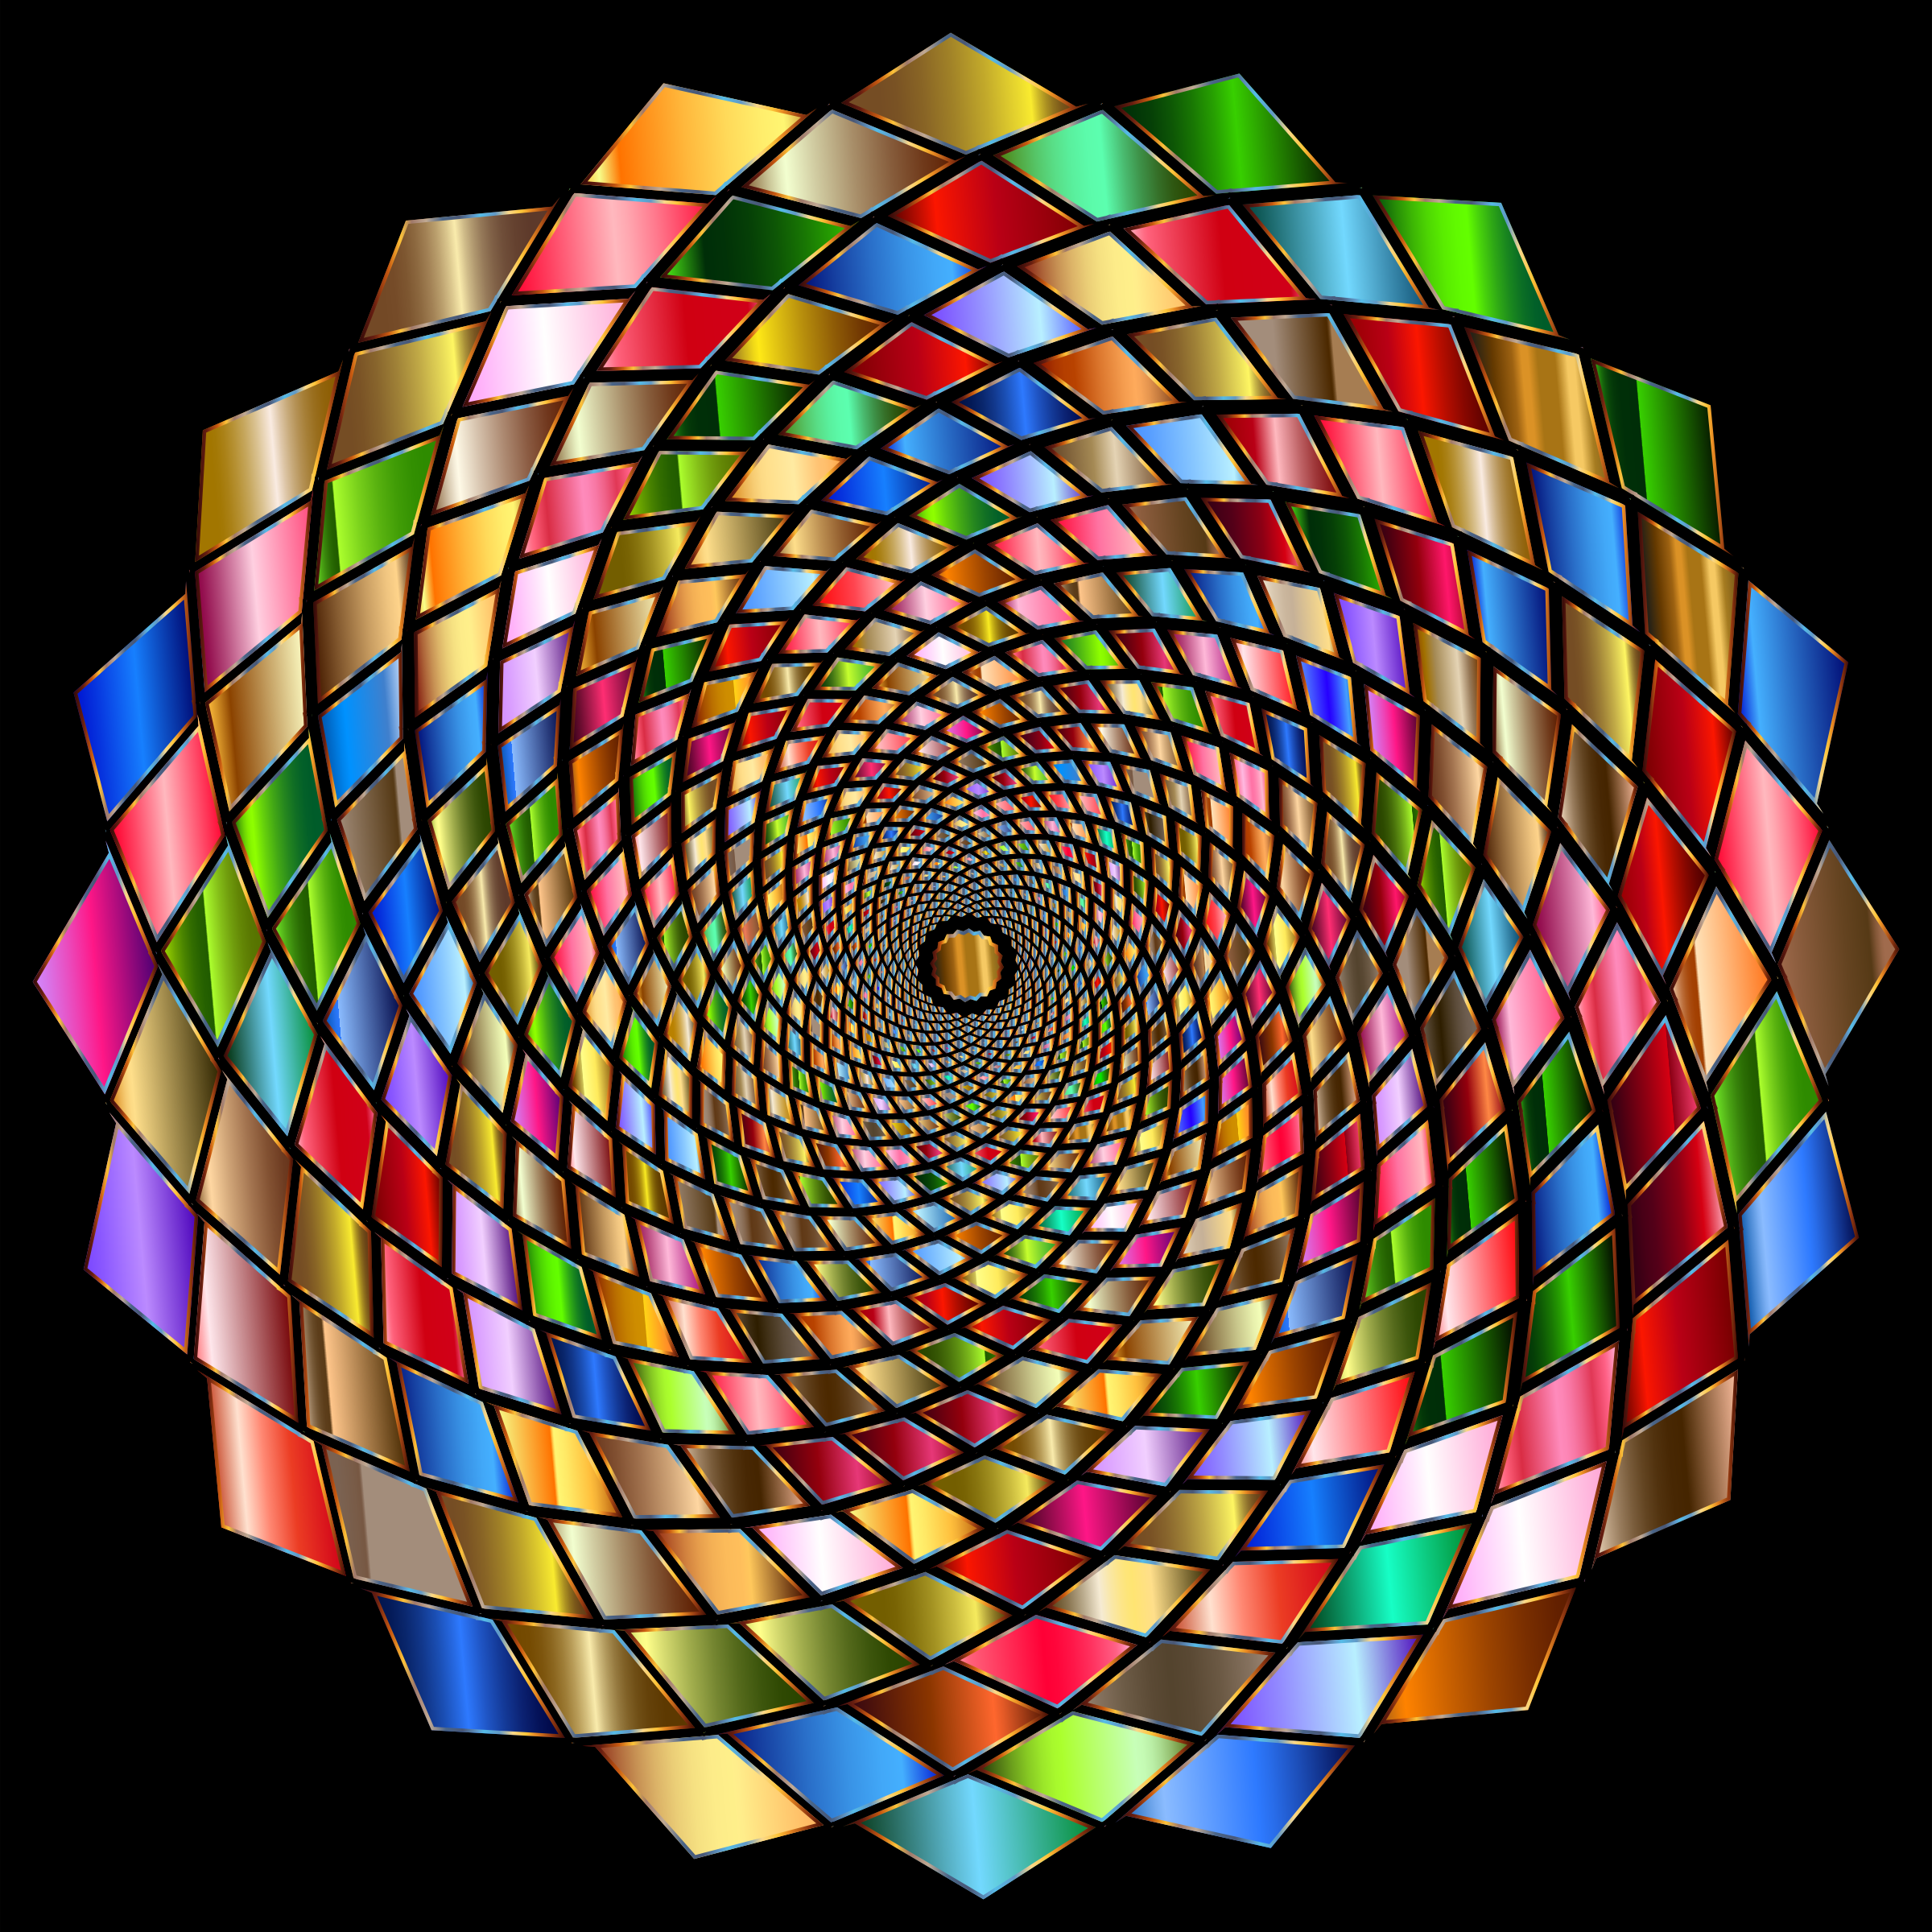 Chromatic Vortex 2 by GDJ